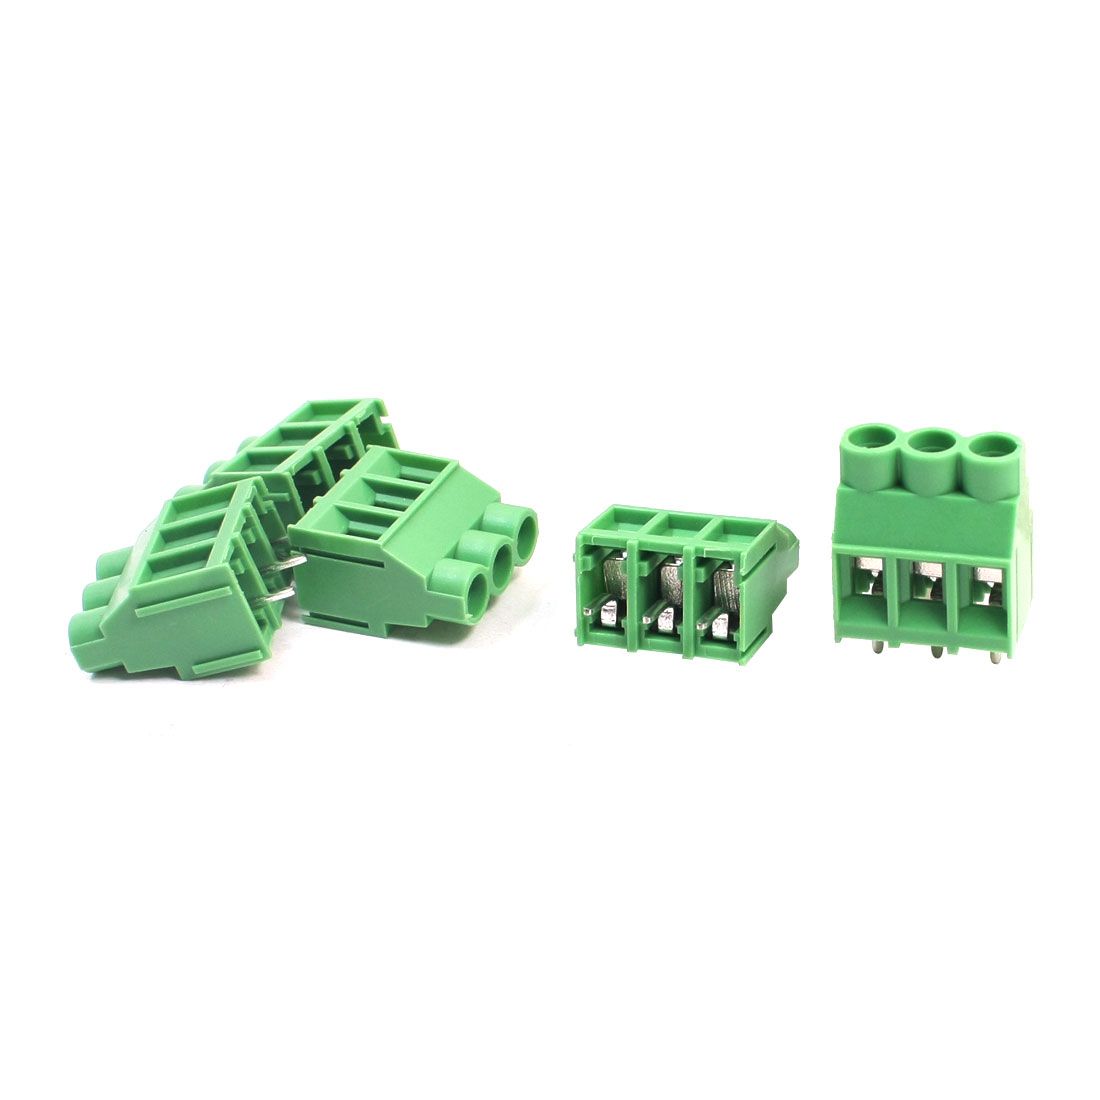 5 Pcs KF635 300V 6.35mm Spacing 4-Pole Through Hole Mounting PCB Screw Terminal Barrier Block Connector